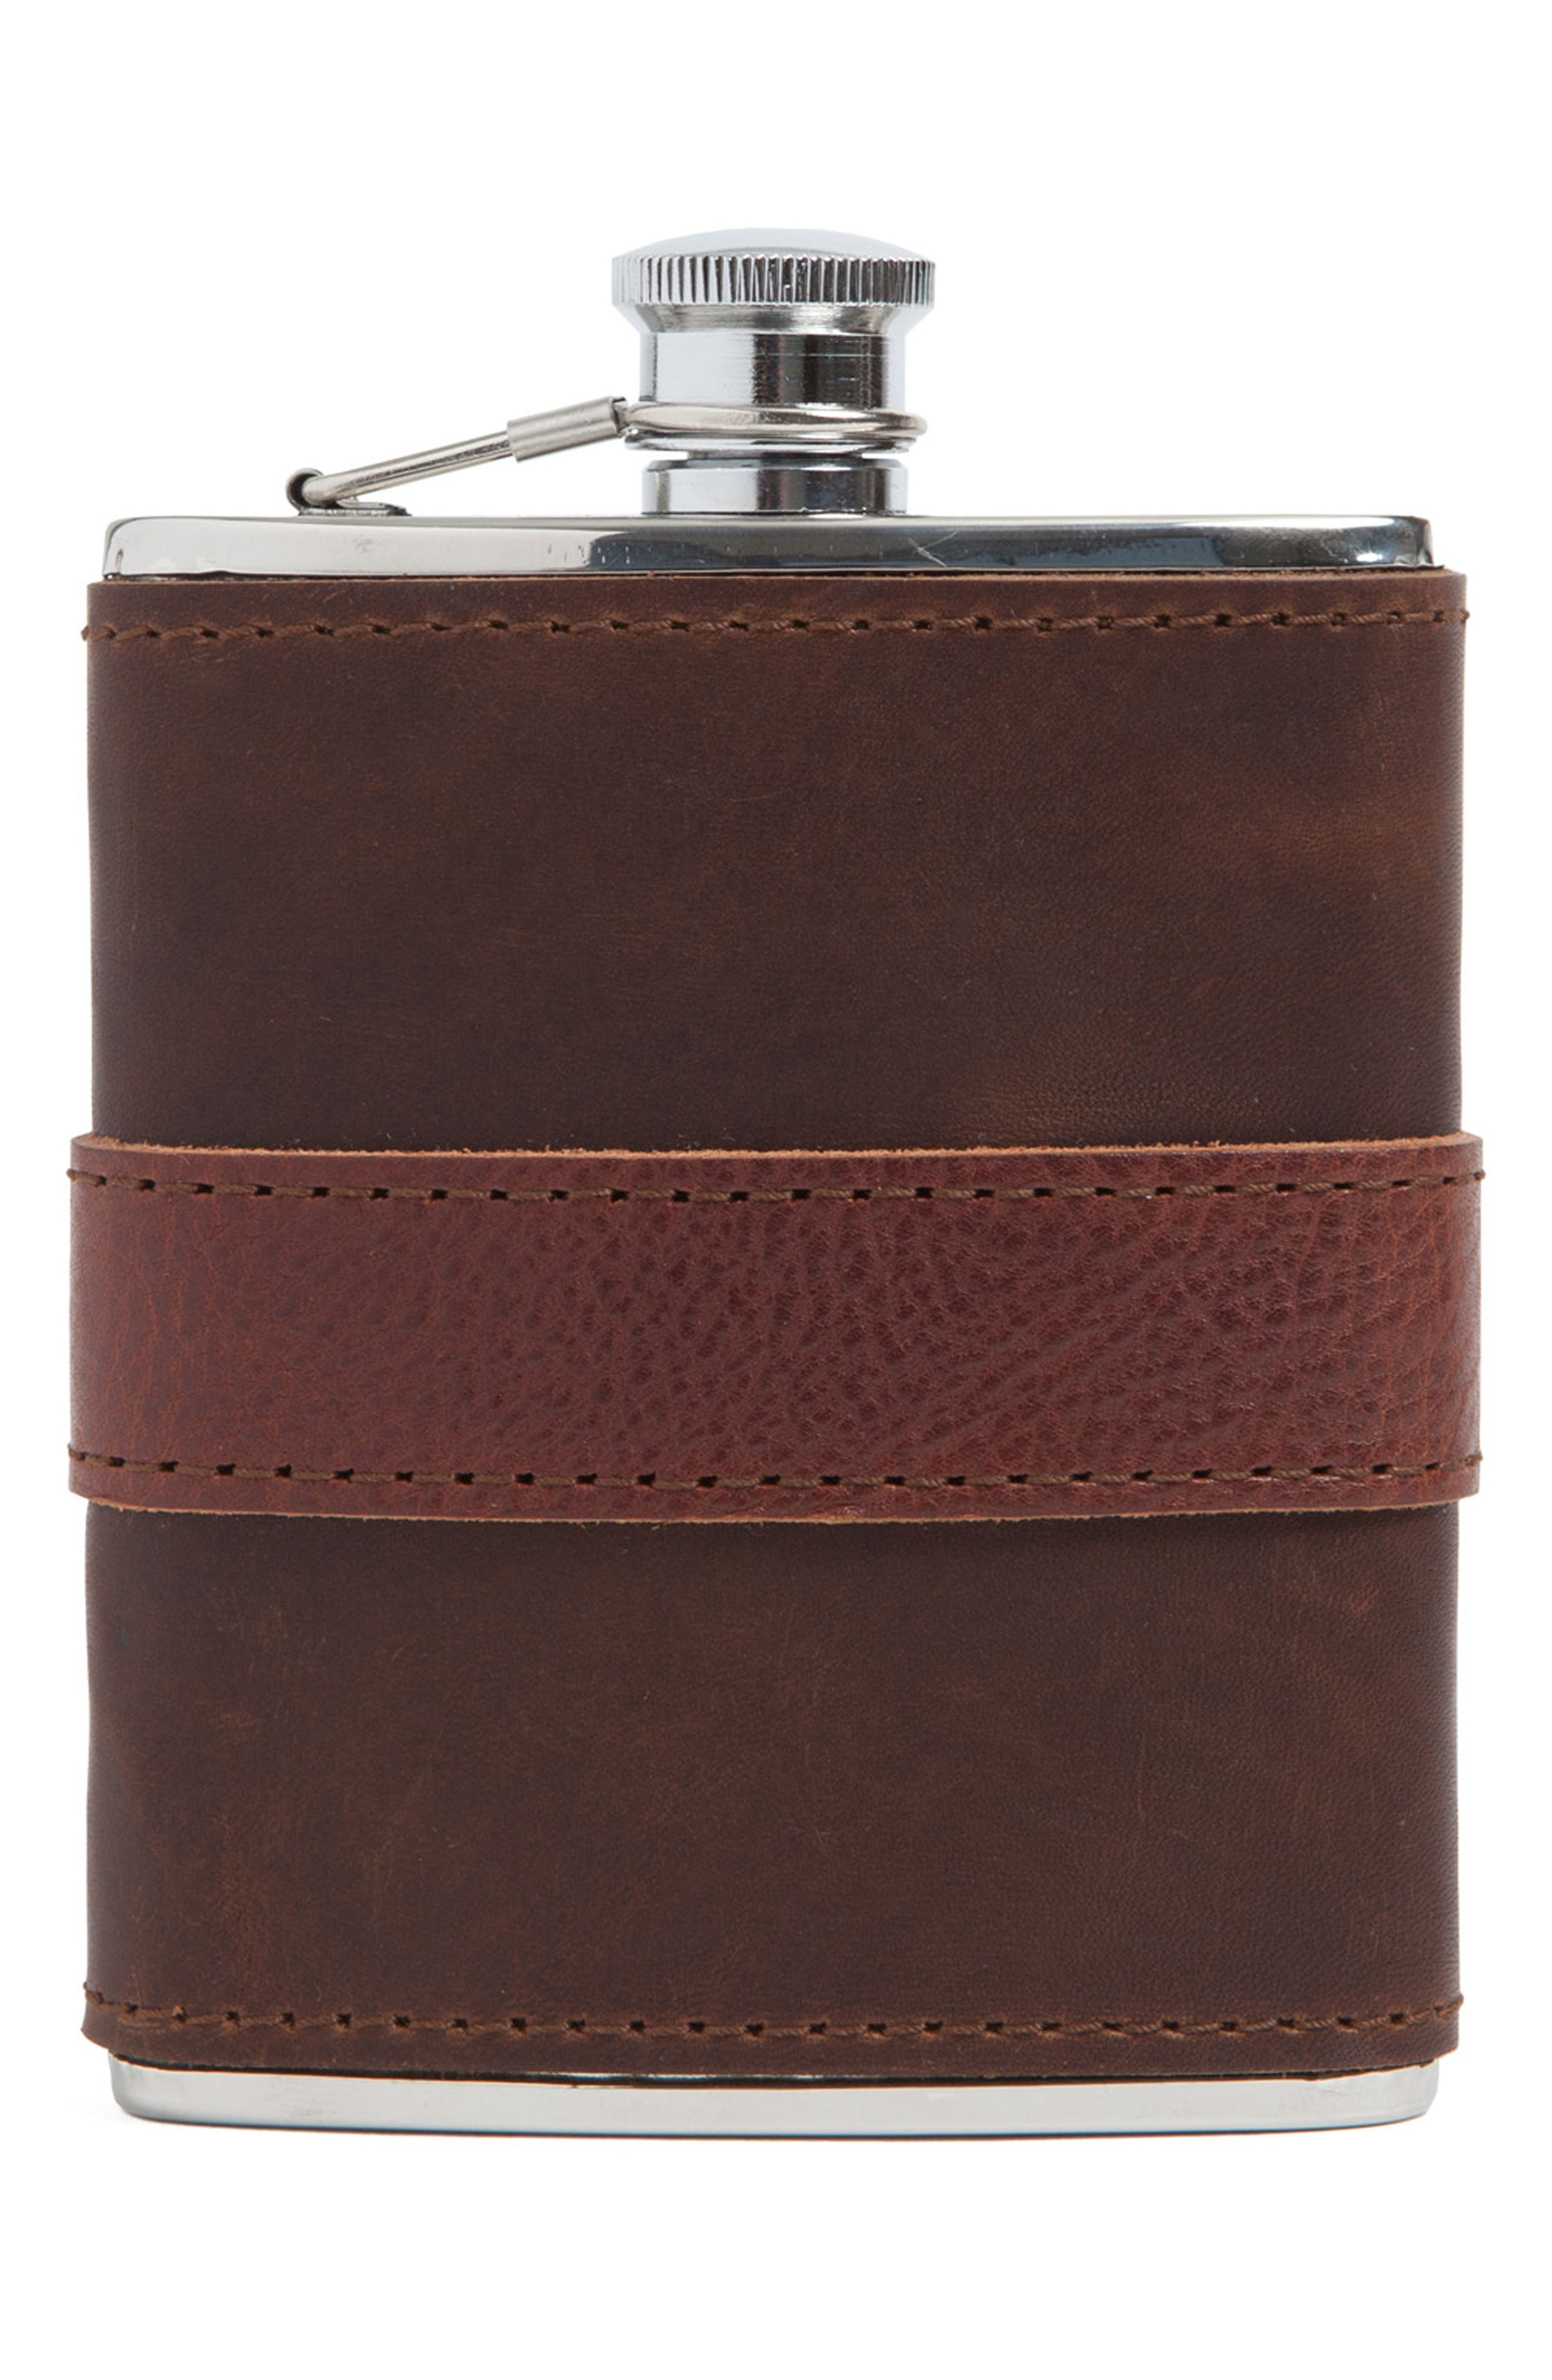 Leather Wrapped Flask,                             Main thumbnail 1, color,                             CHOCOLATE